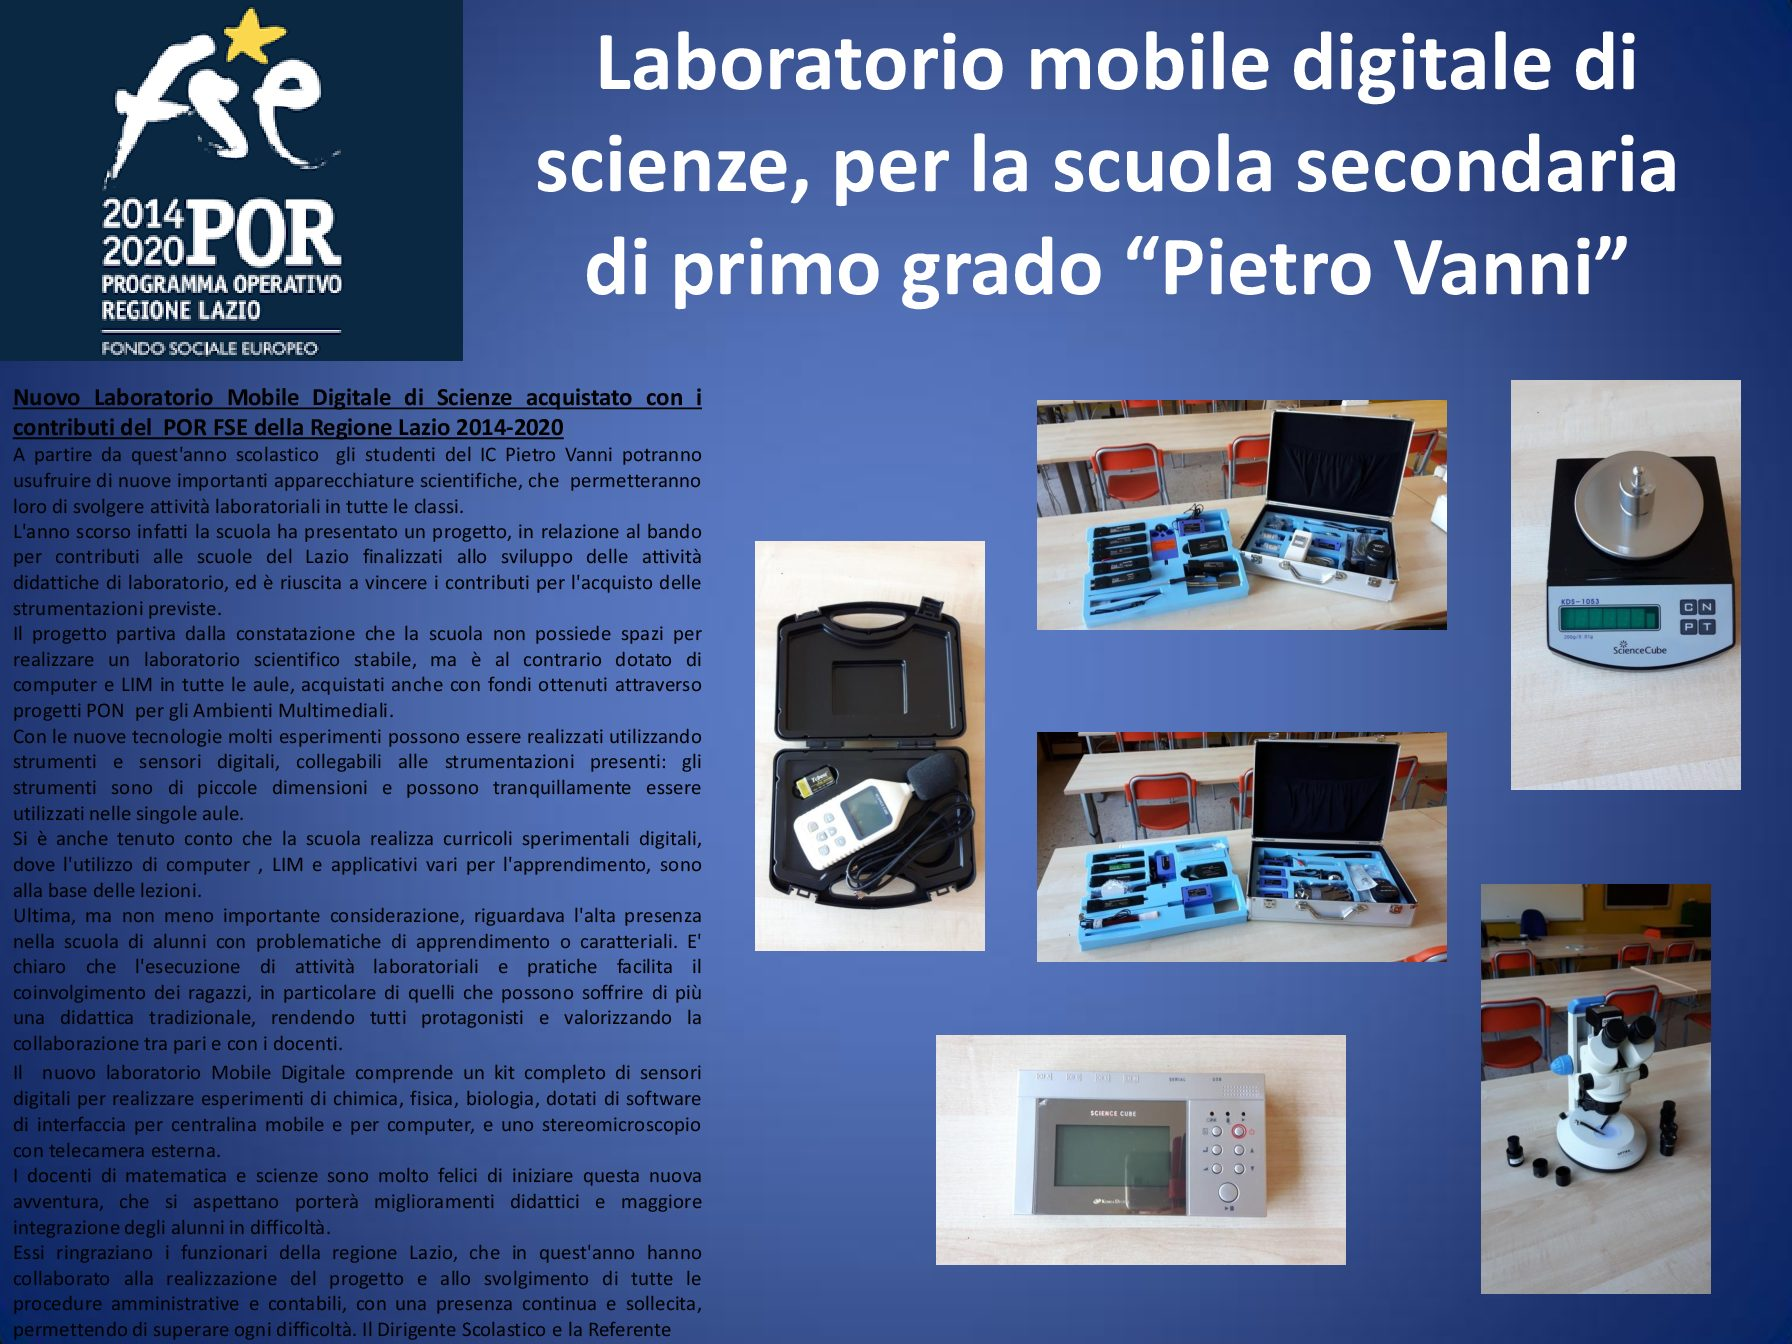 LABORATORIO MOBILE DIGITALE DI SCIENZE